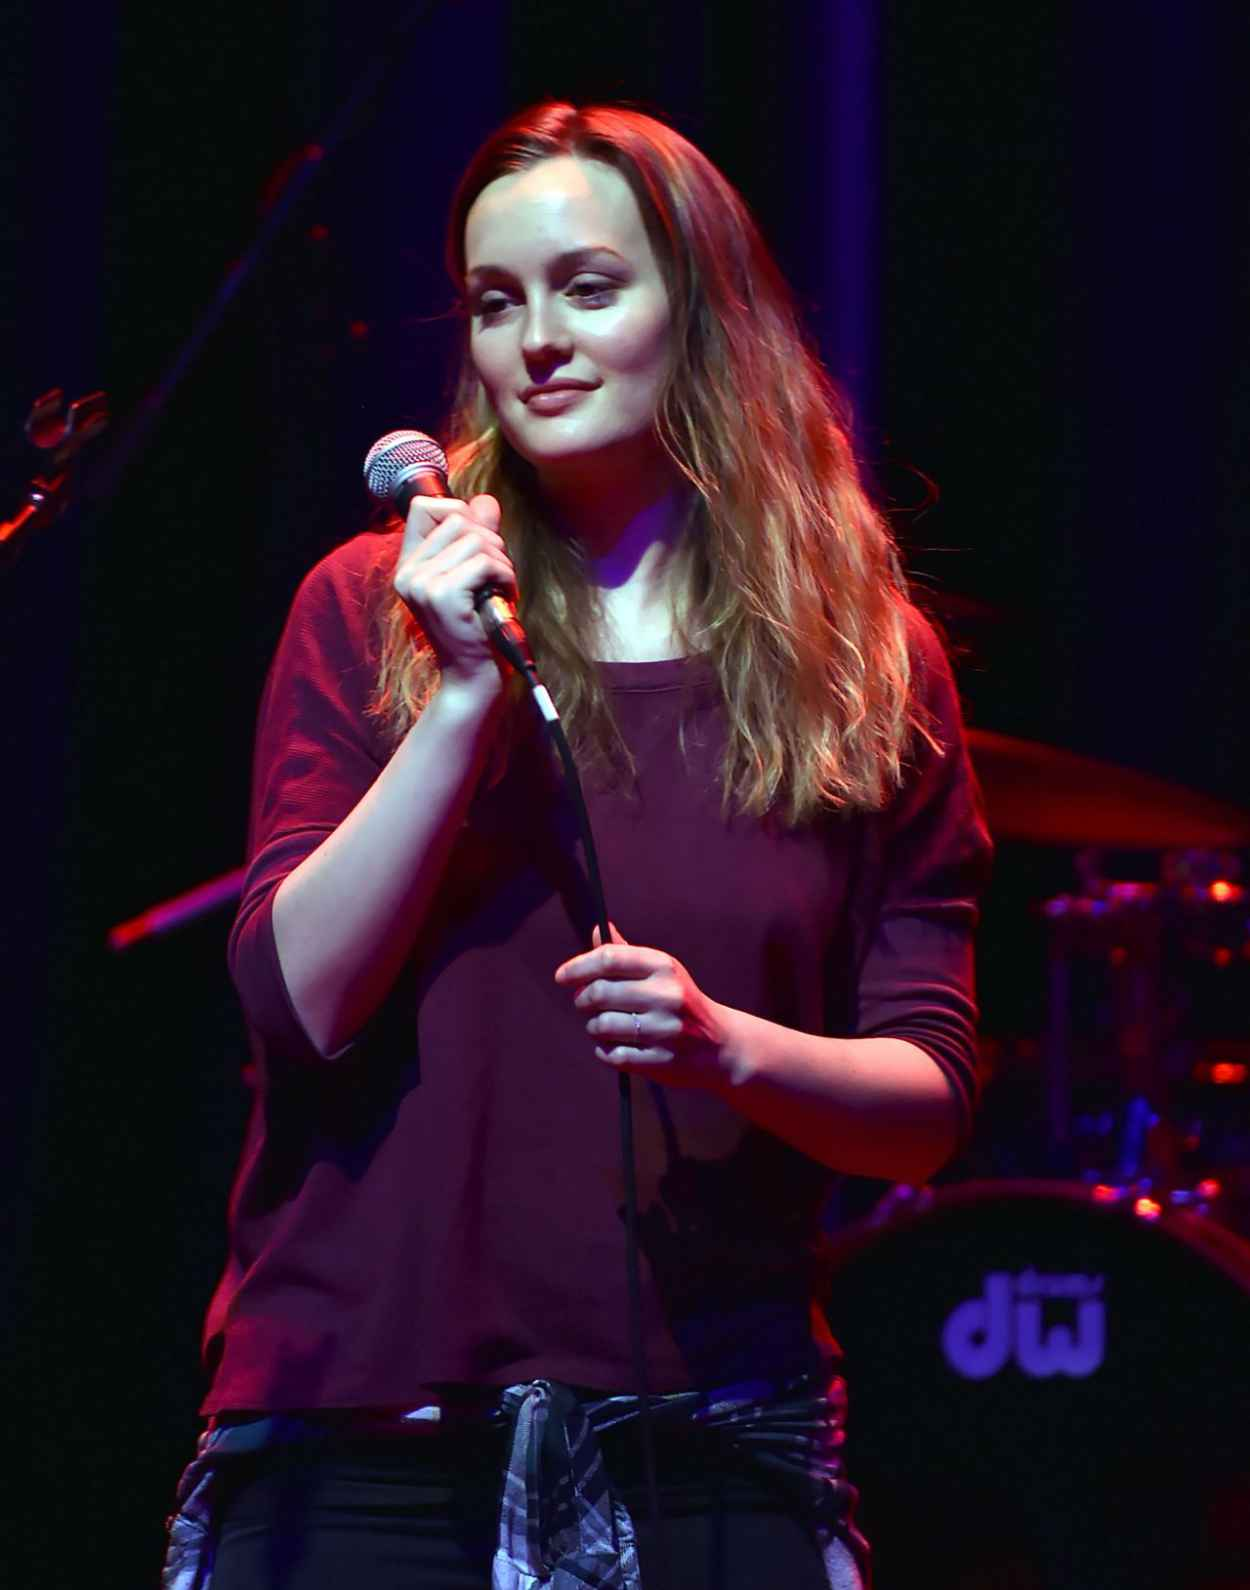 Leighton Meester Performs at Hitsville USA in Detroit - February 2015-1